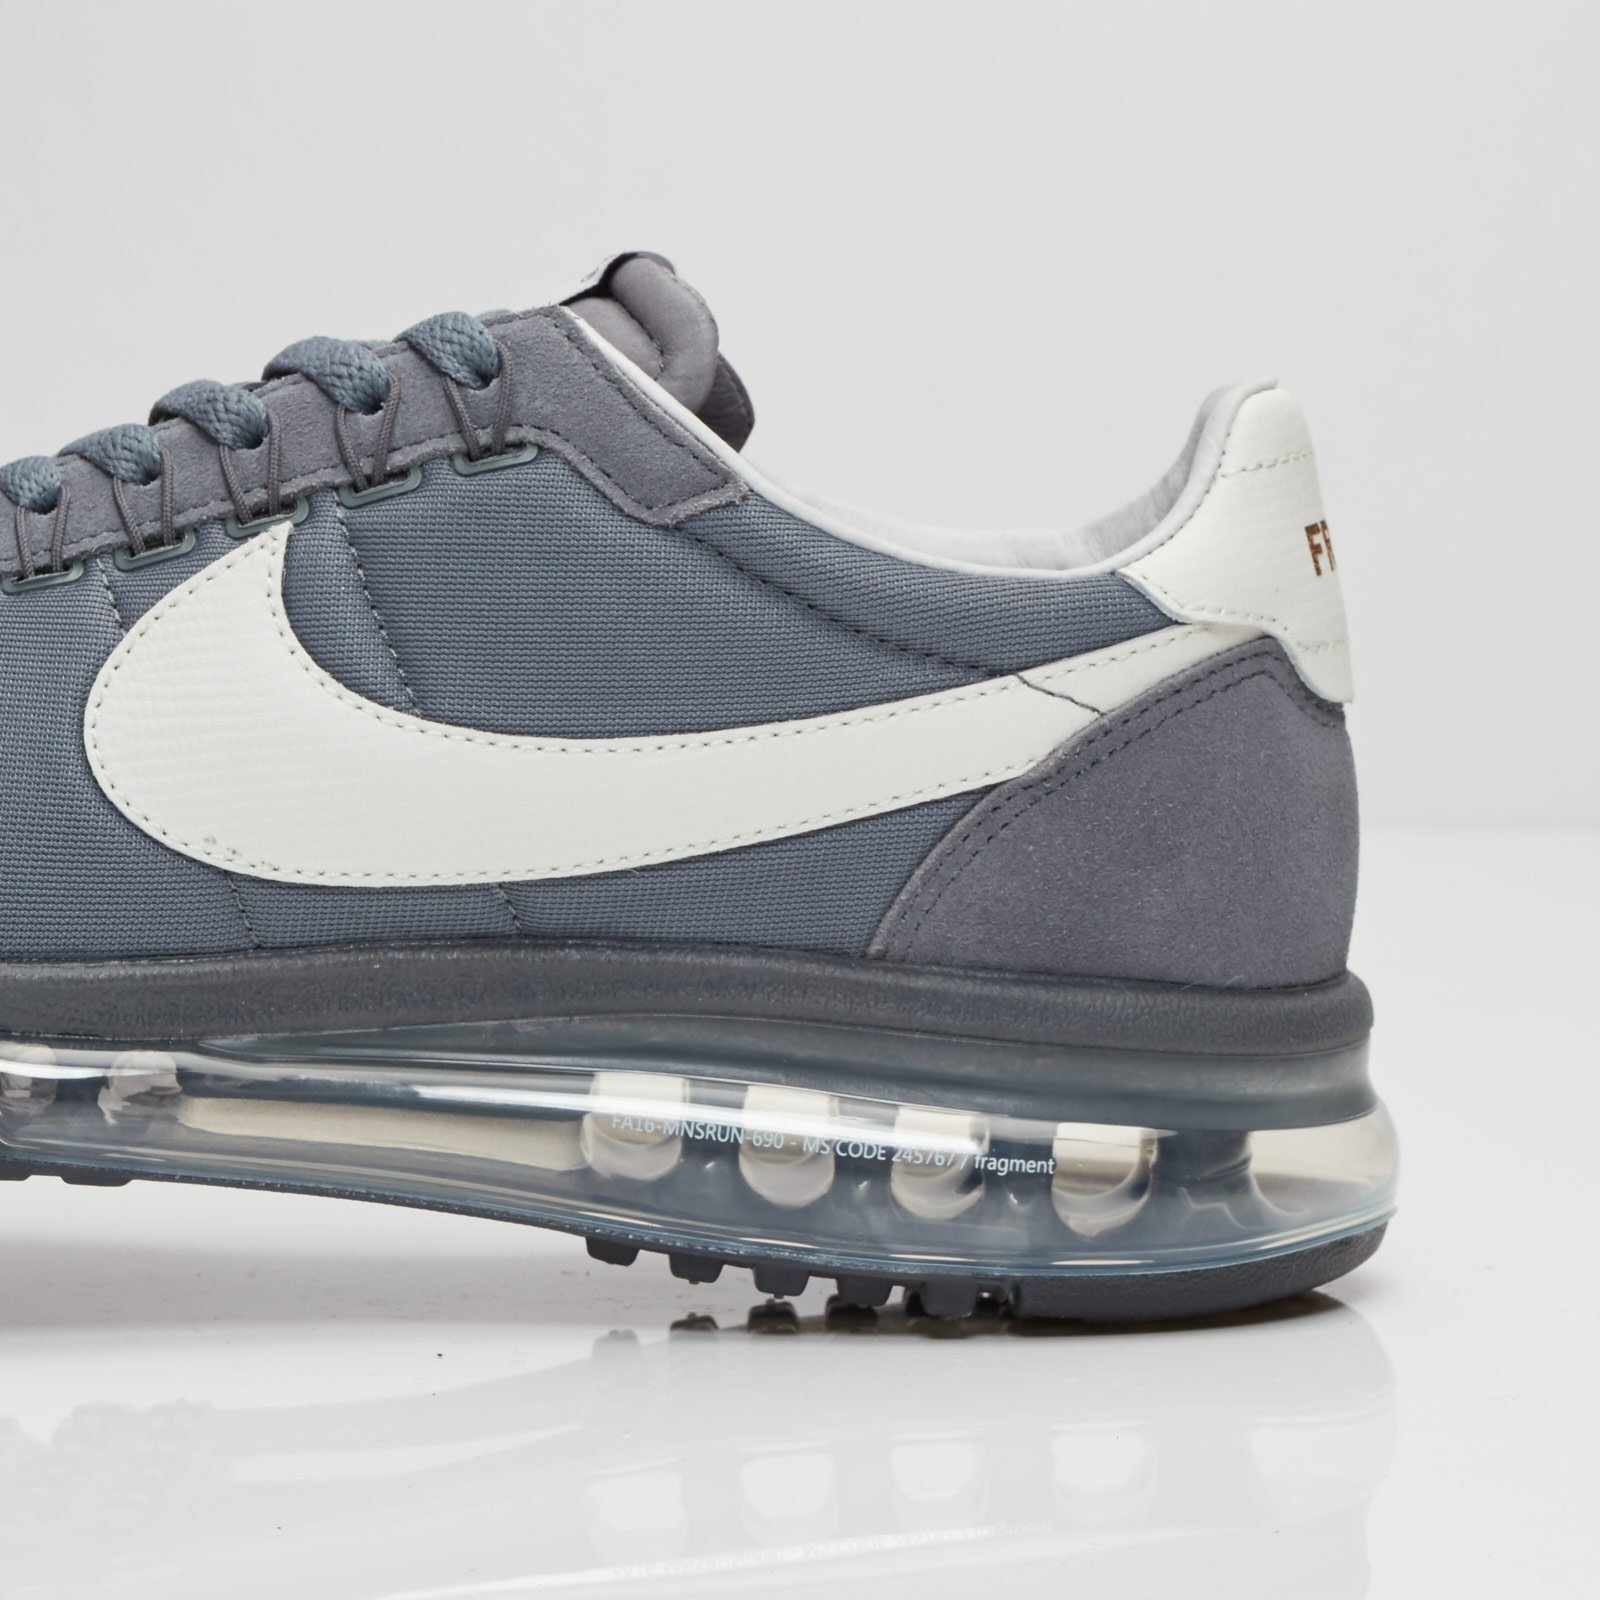 new product 0e357 b11c5 Nike Air Max ld-zero Fragment - 885893-002 - Sneakersnstuff   sneakers   streetwear  online since 1999